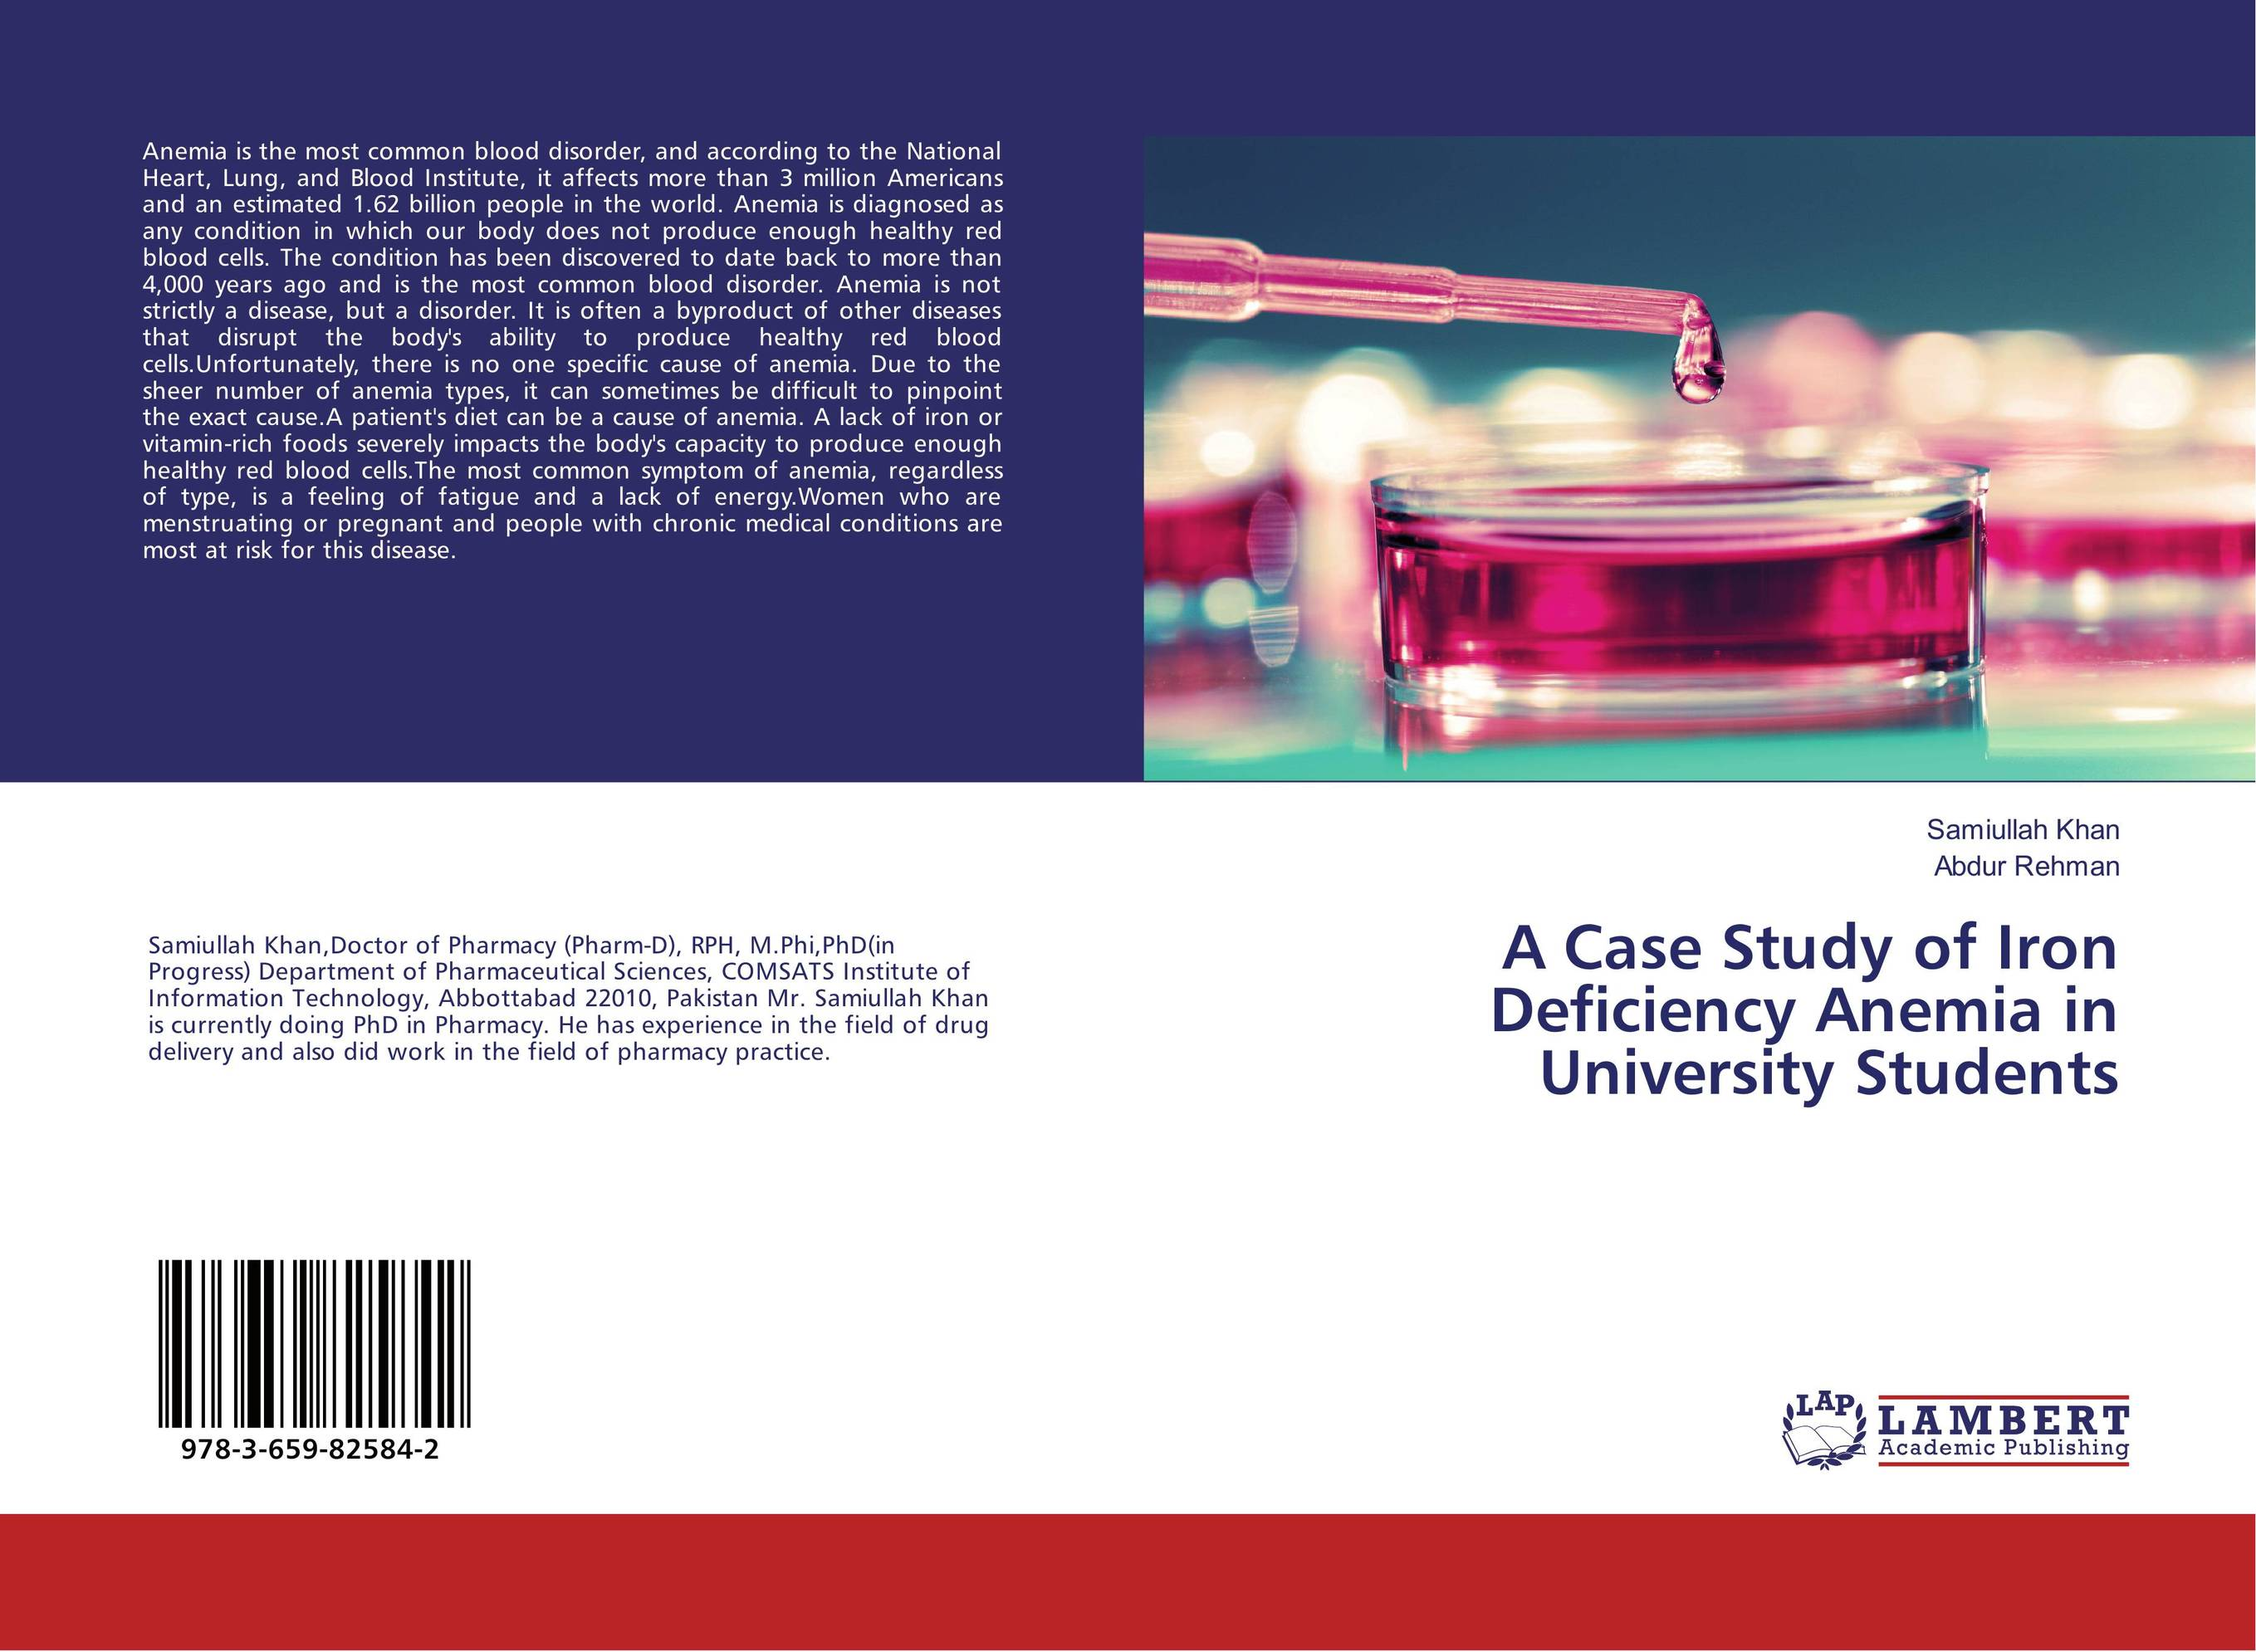 A Case Study of Iron Deficiency Anemia in University Students incidence of iron deficiency anemia in day scholar university girls